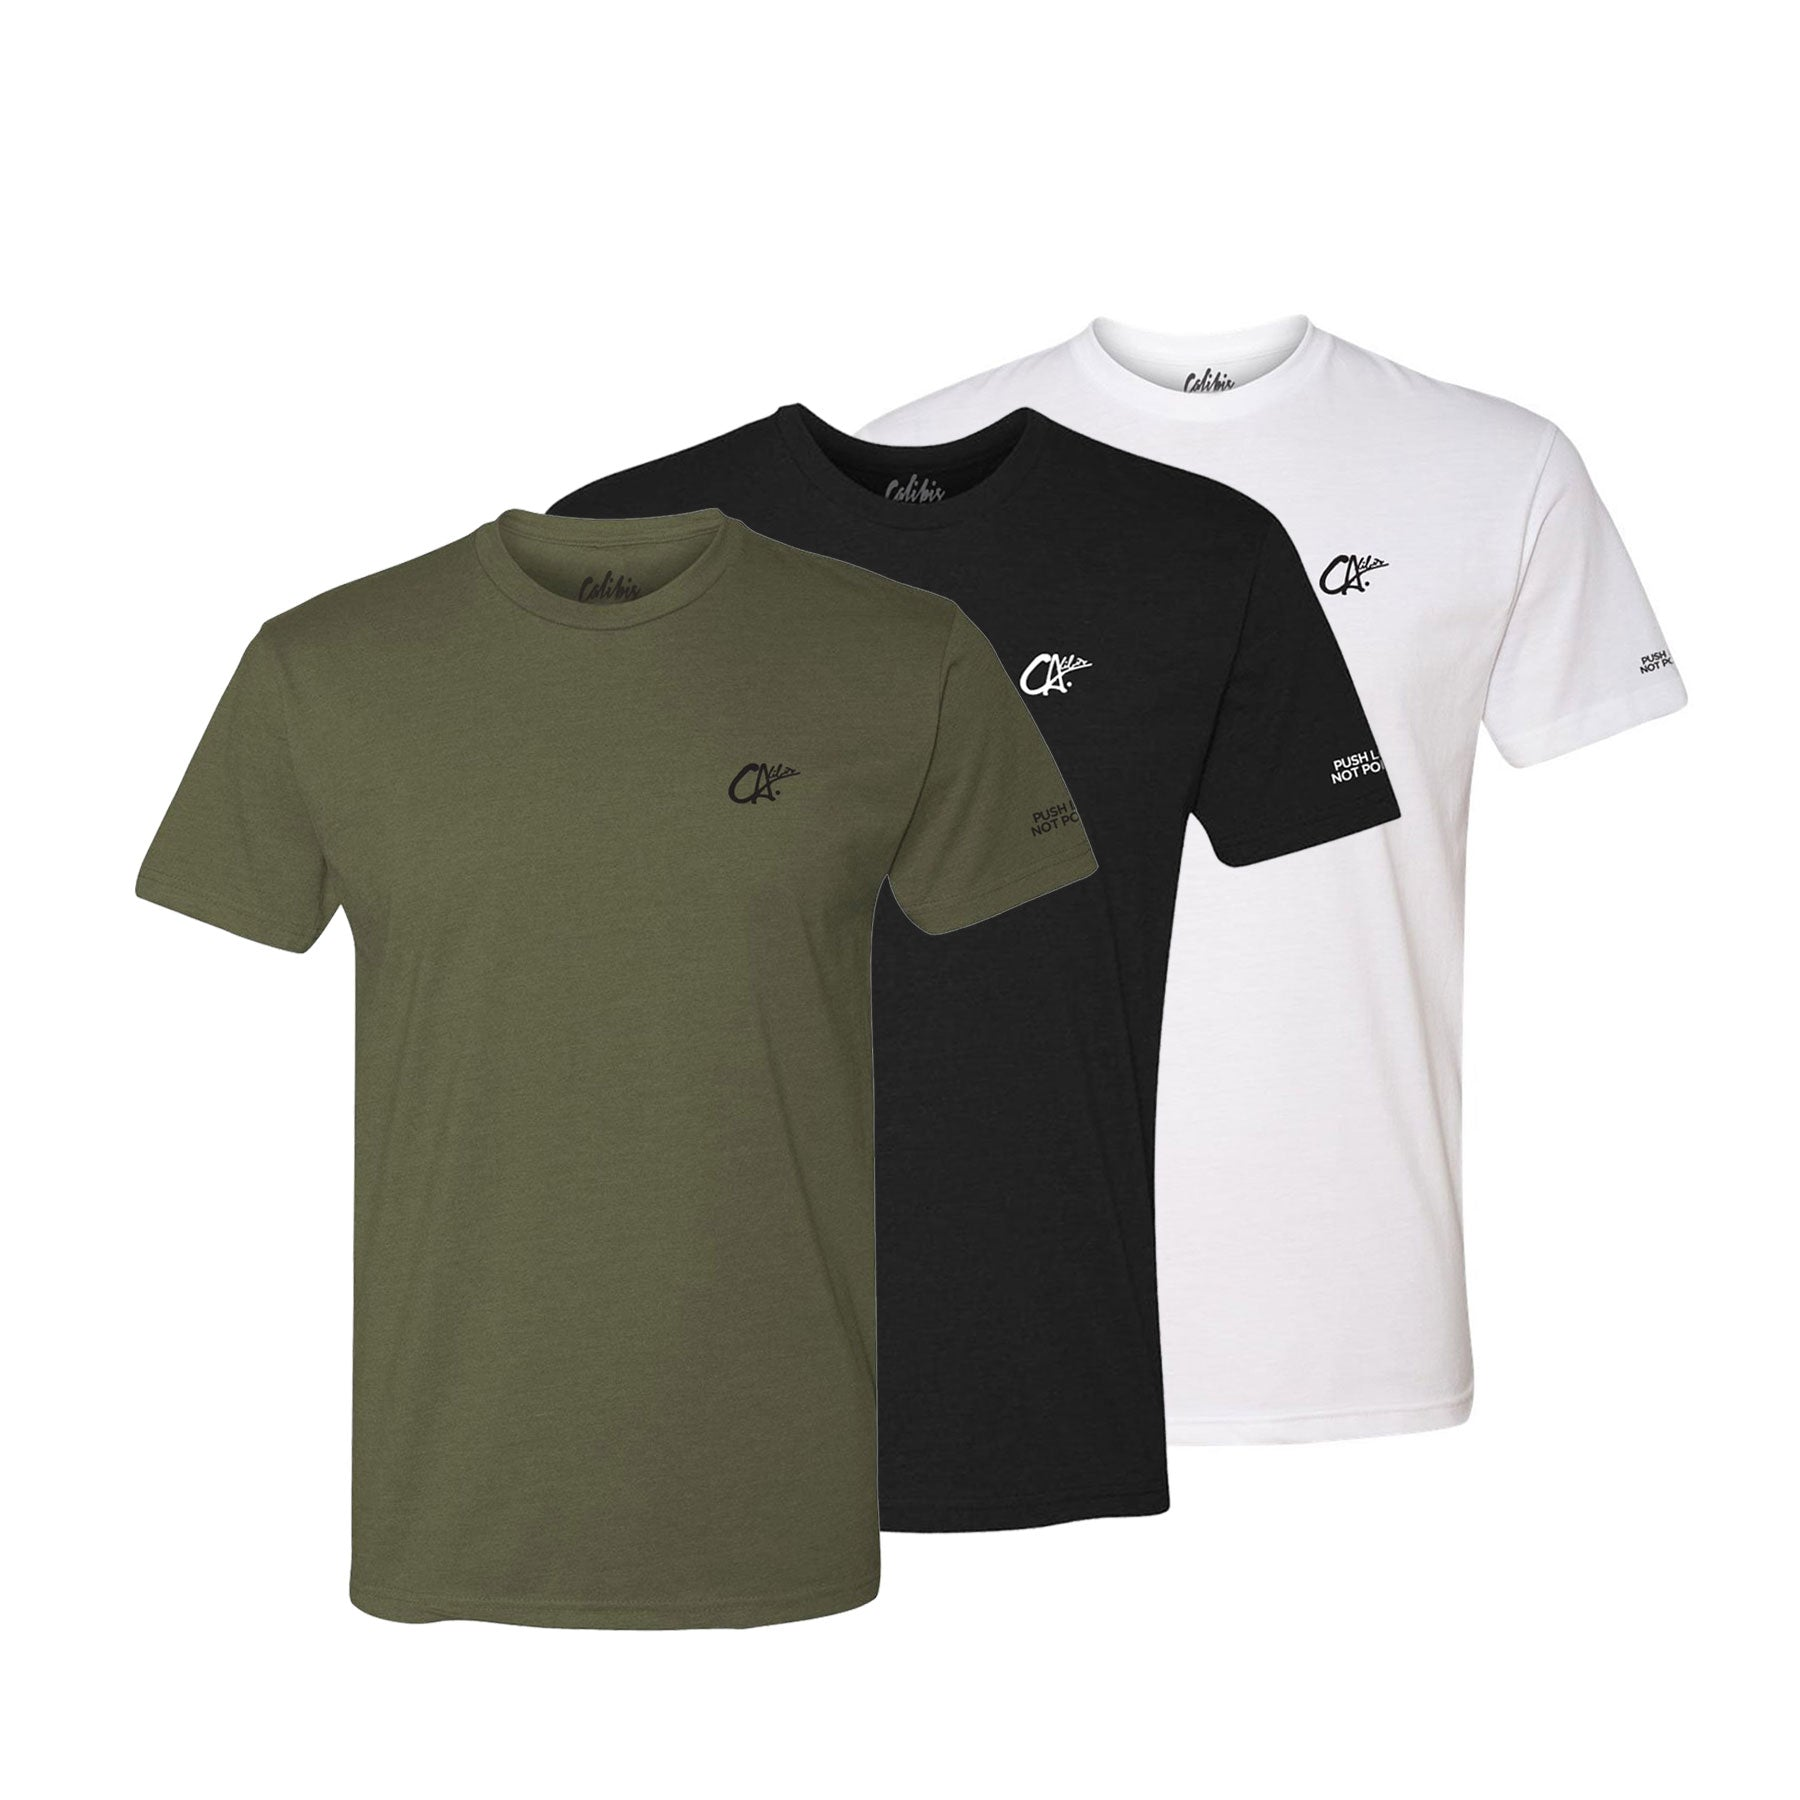 (3) Pack Logo Premium Tee by Calibis Clothing